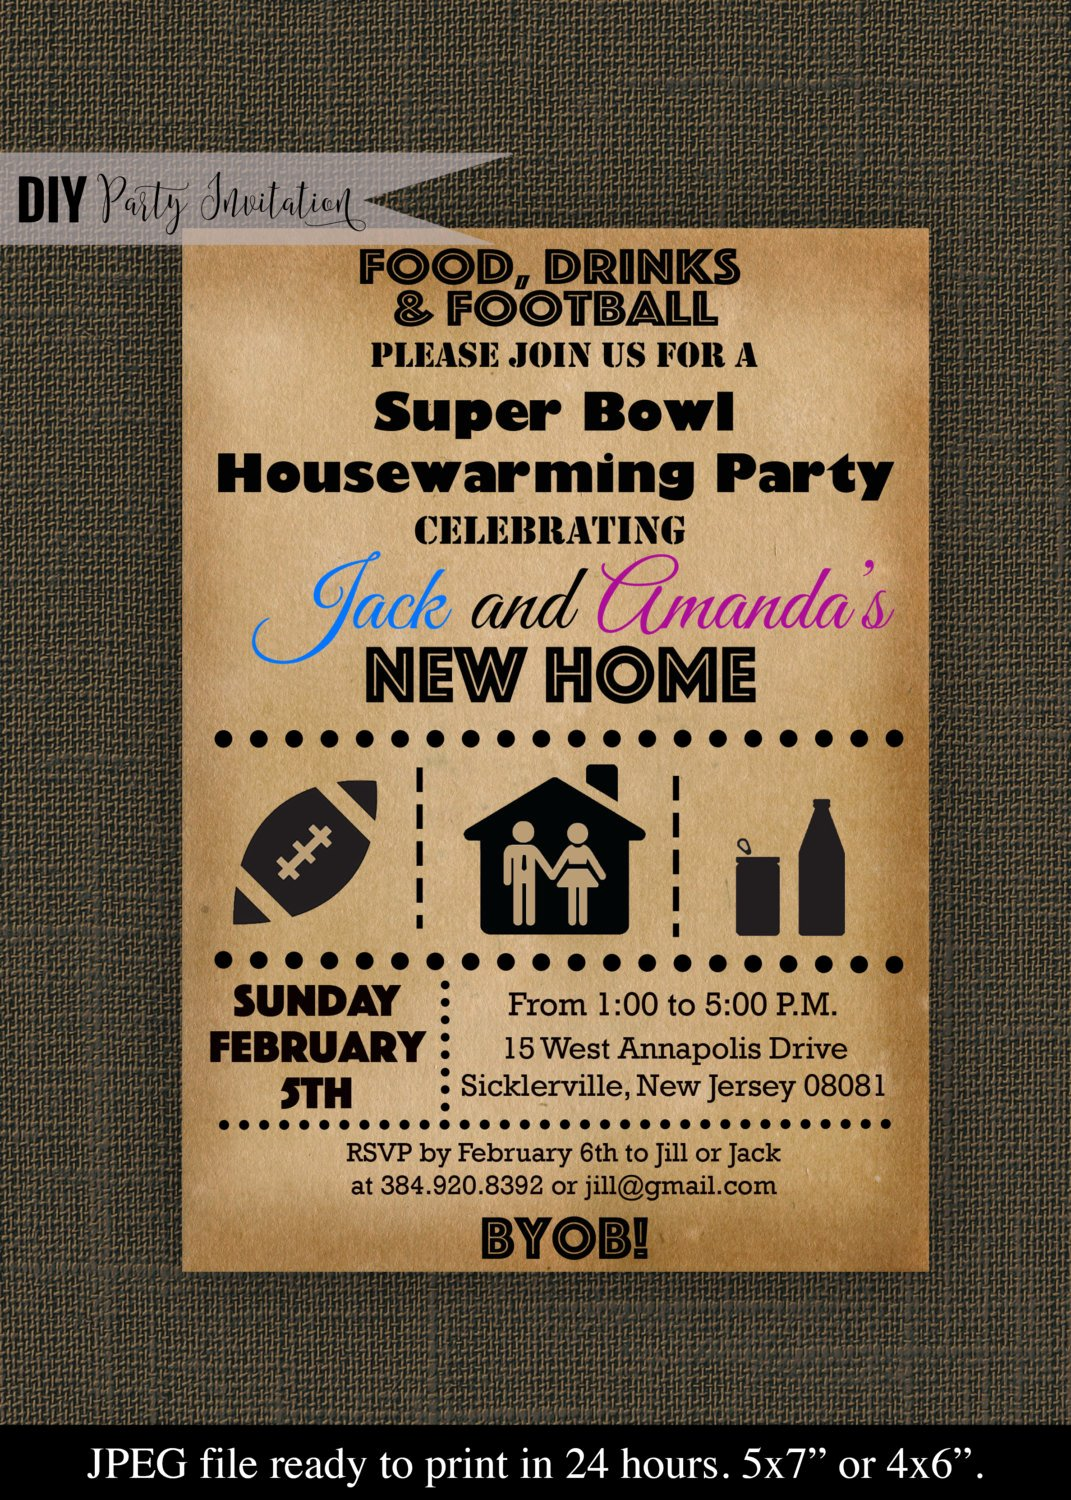 Superbowl Party Invitation Template Fresh Super Bowl Housewarming Party Invitation by Diypartyinvitation